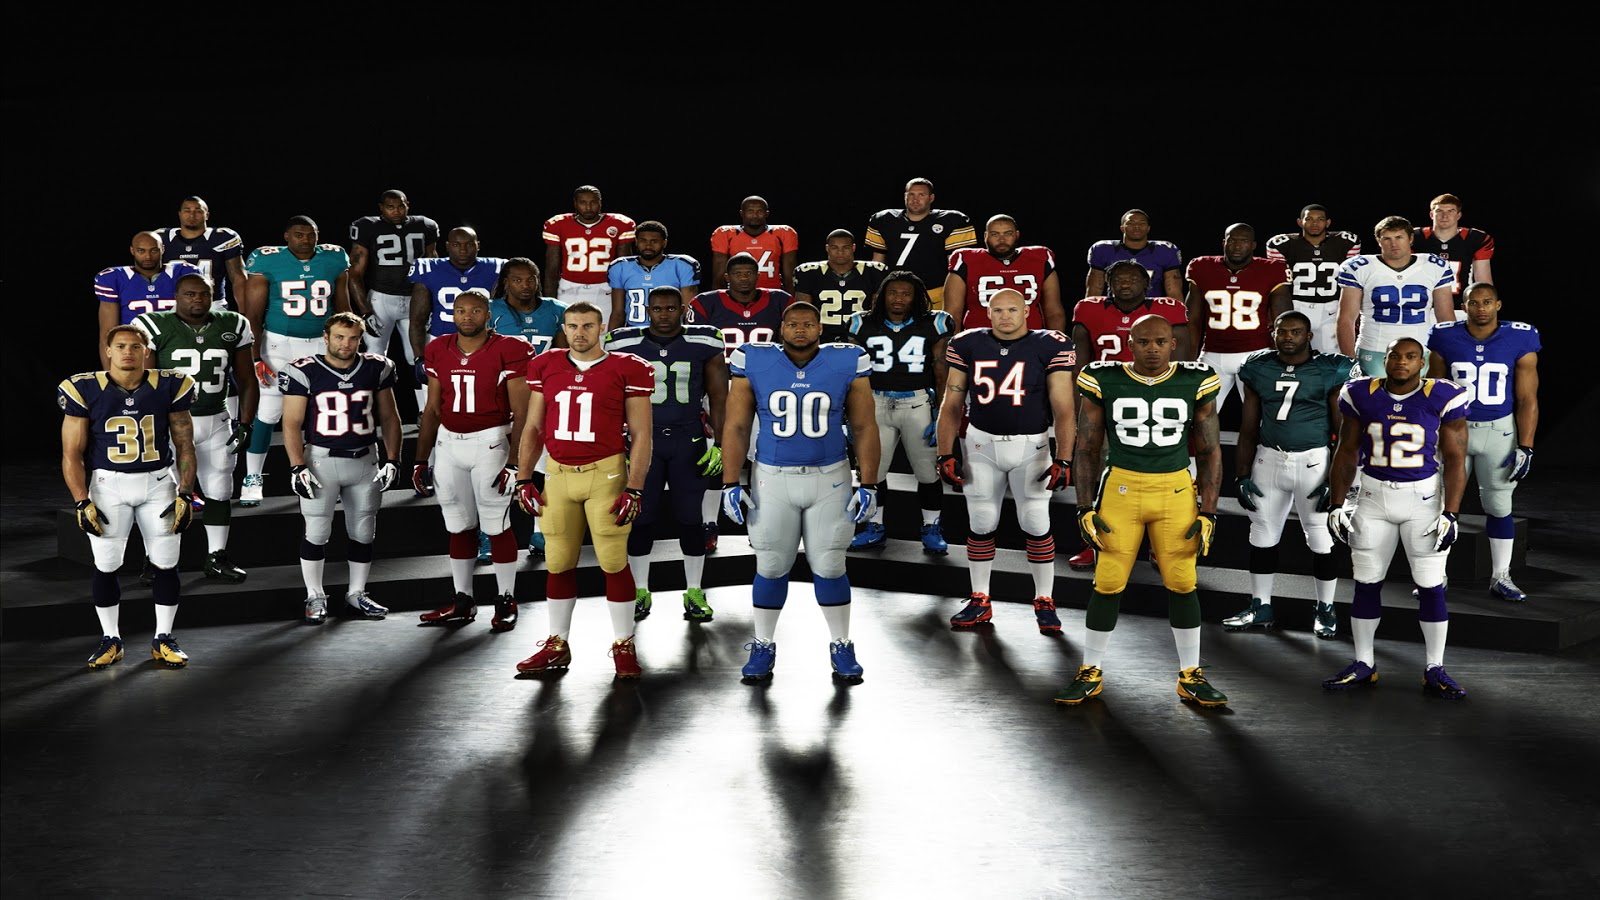 nfl 2012 - free download nfl football hd wallpapers for ipad and